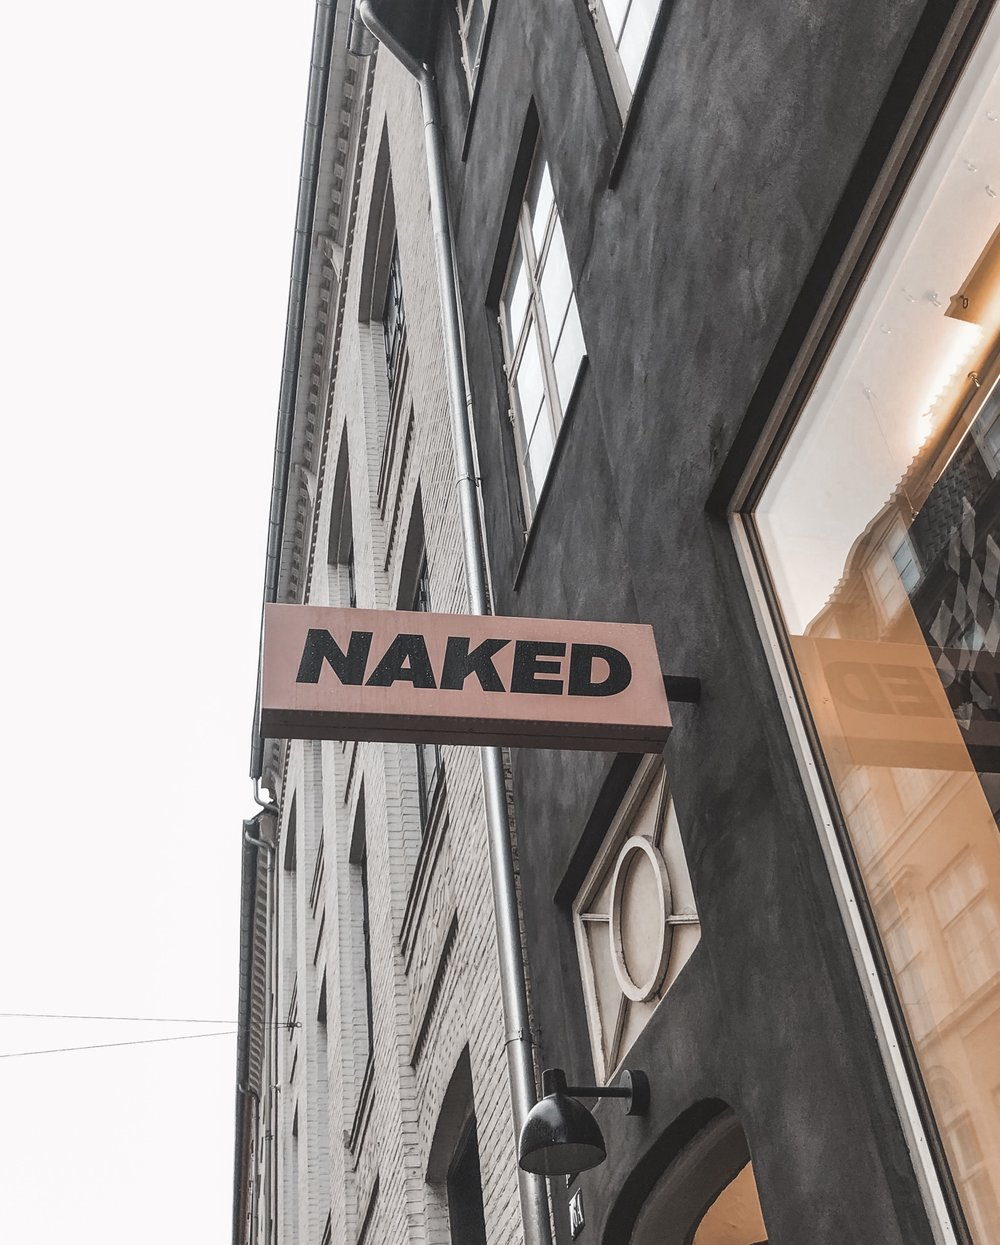 Naked - One of the world's leading women's sneaker suppliers. I remember visiting the store like six years ago when they only had one shop in Copenhagen - the brand has grown massively since then.